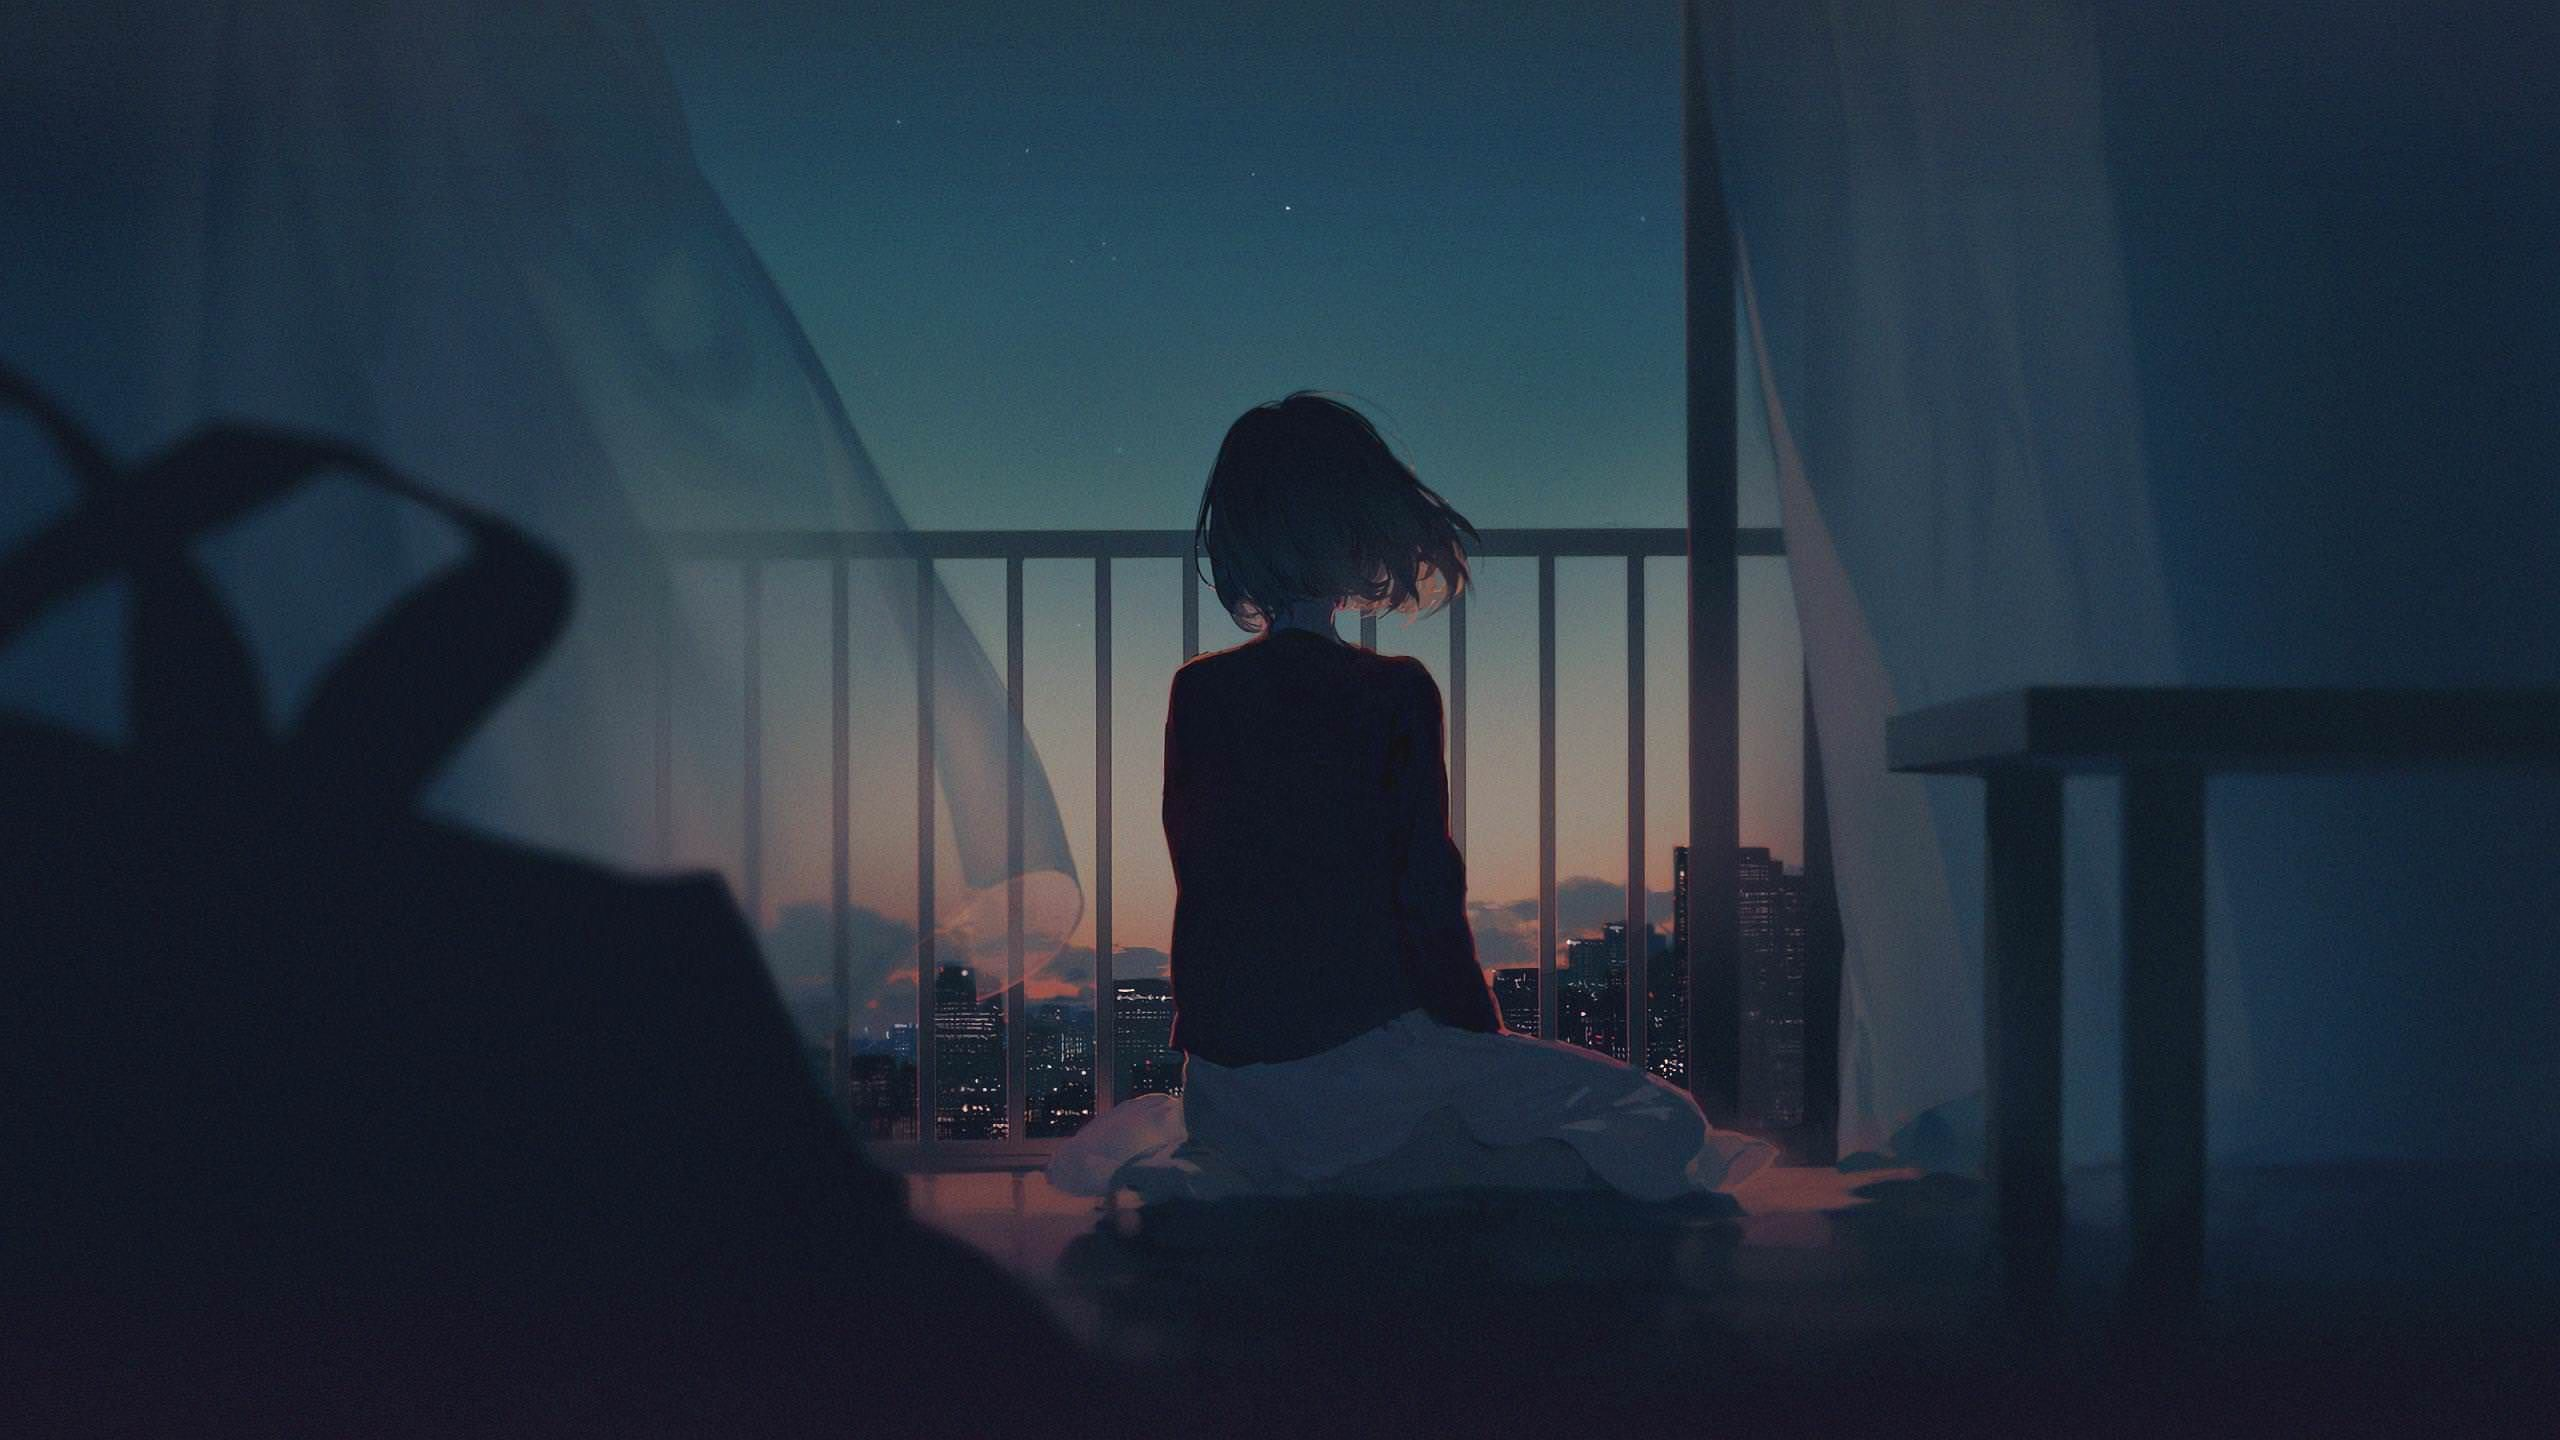 Alone Sad Anime Wallpapers   Top Alone Sad Anime Backgrounds 2560x1440